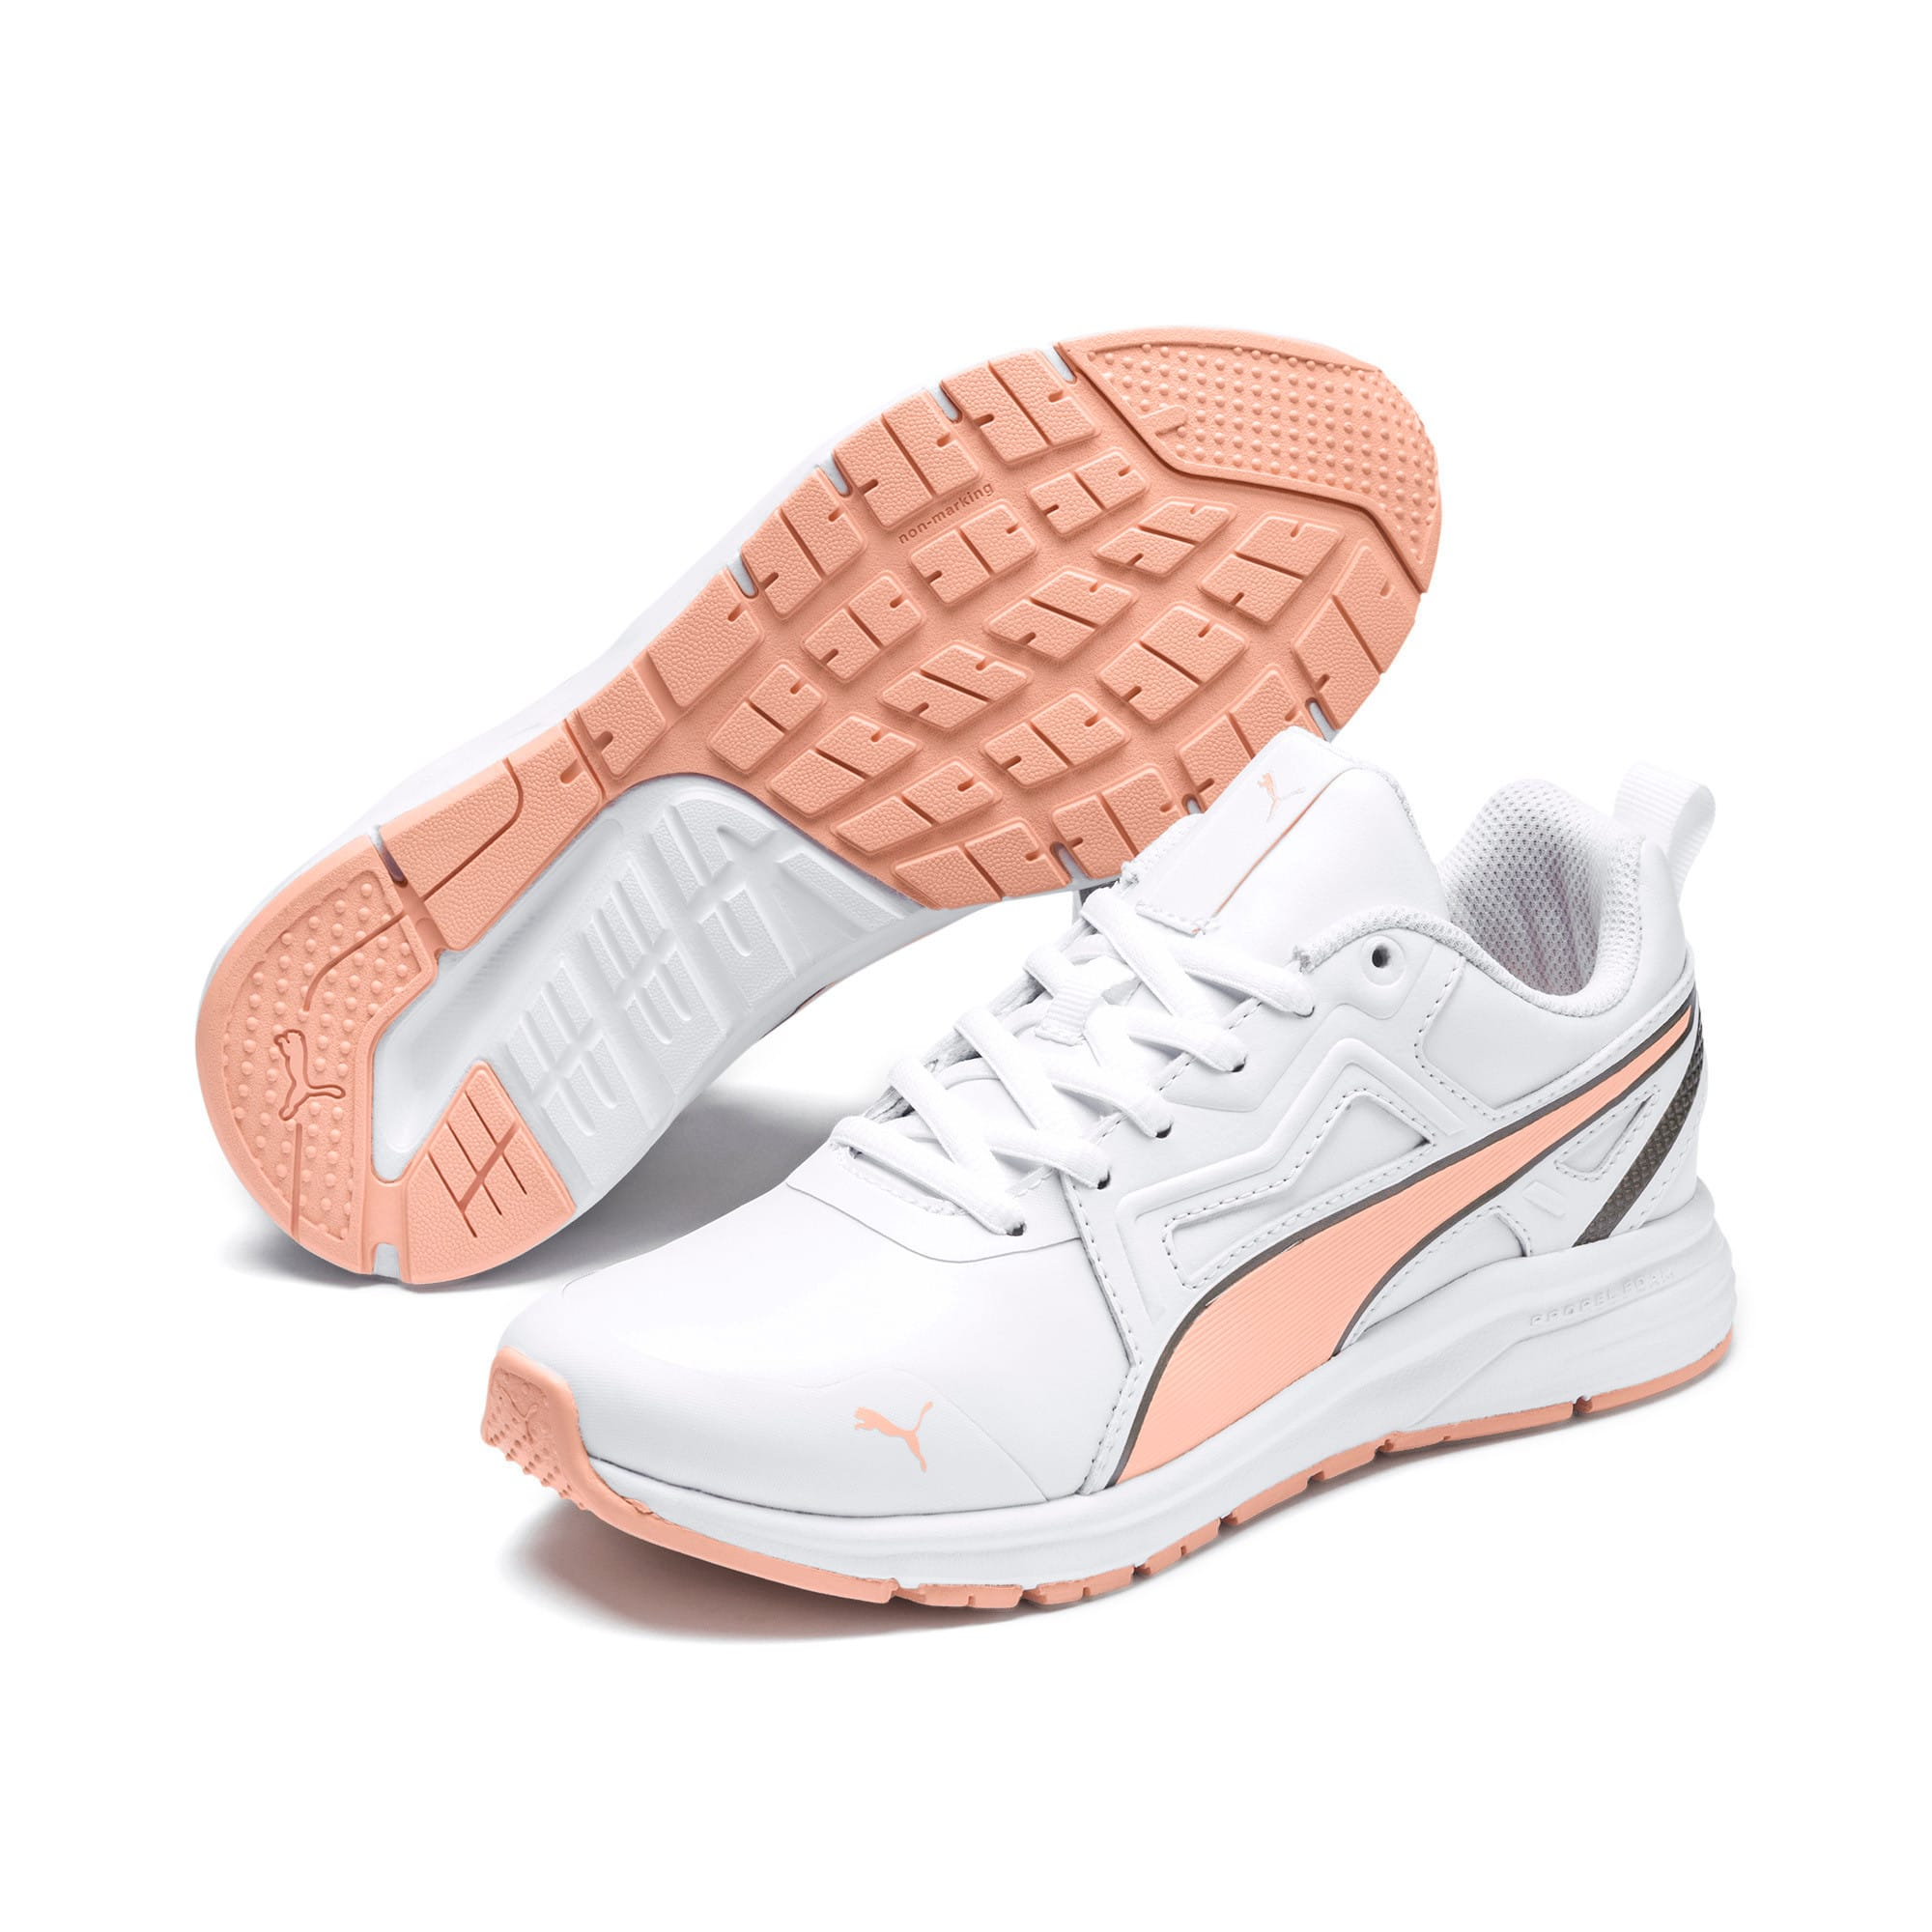 Thumbnail 6 of Pure Jogger Youth Trainers, White-Peach Parfait-A Silver, medium-IND